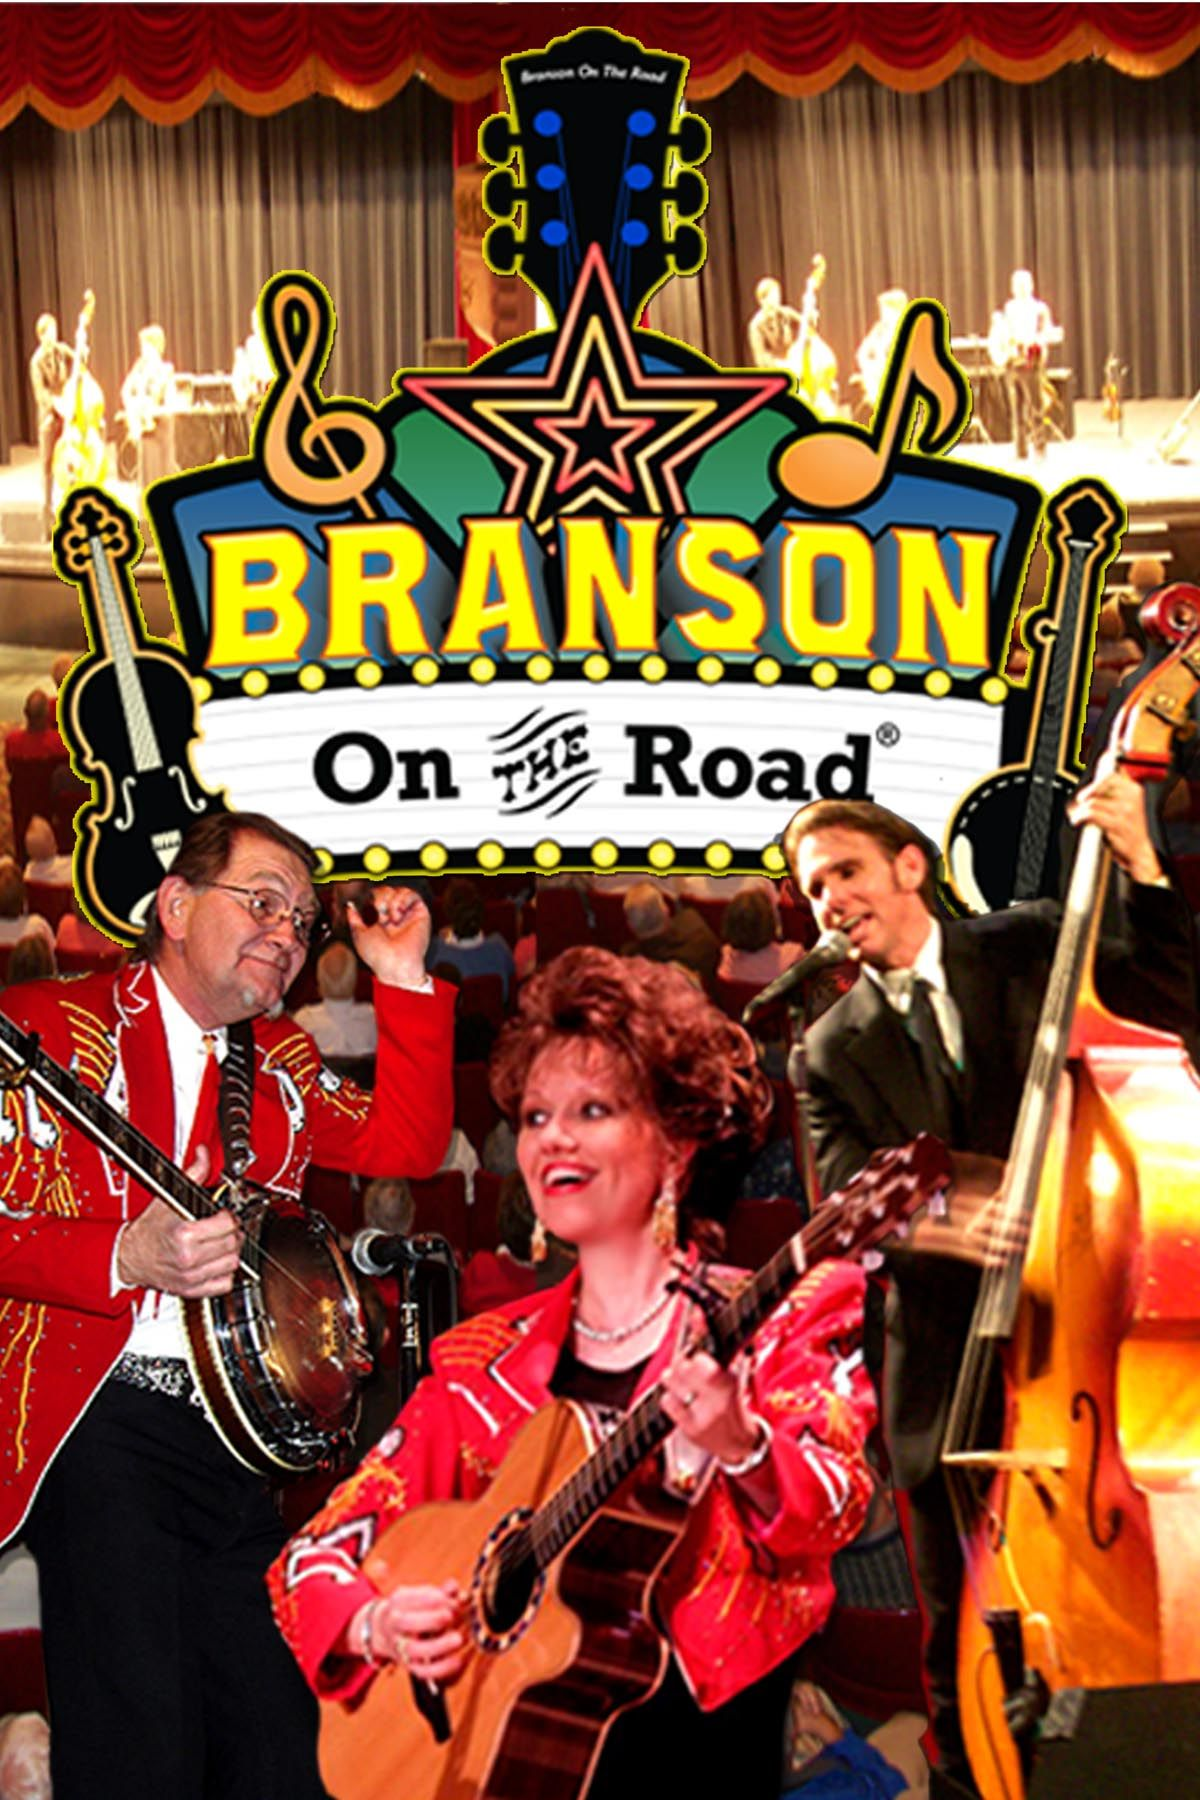 Branson on the road march 1315 at 2 pm on the main stage